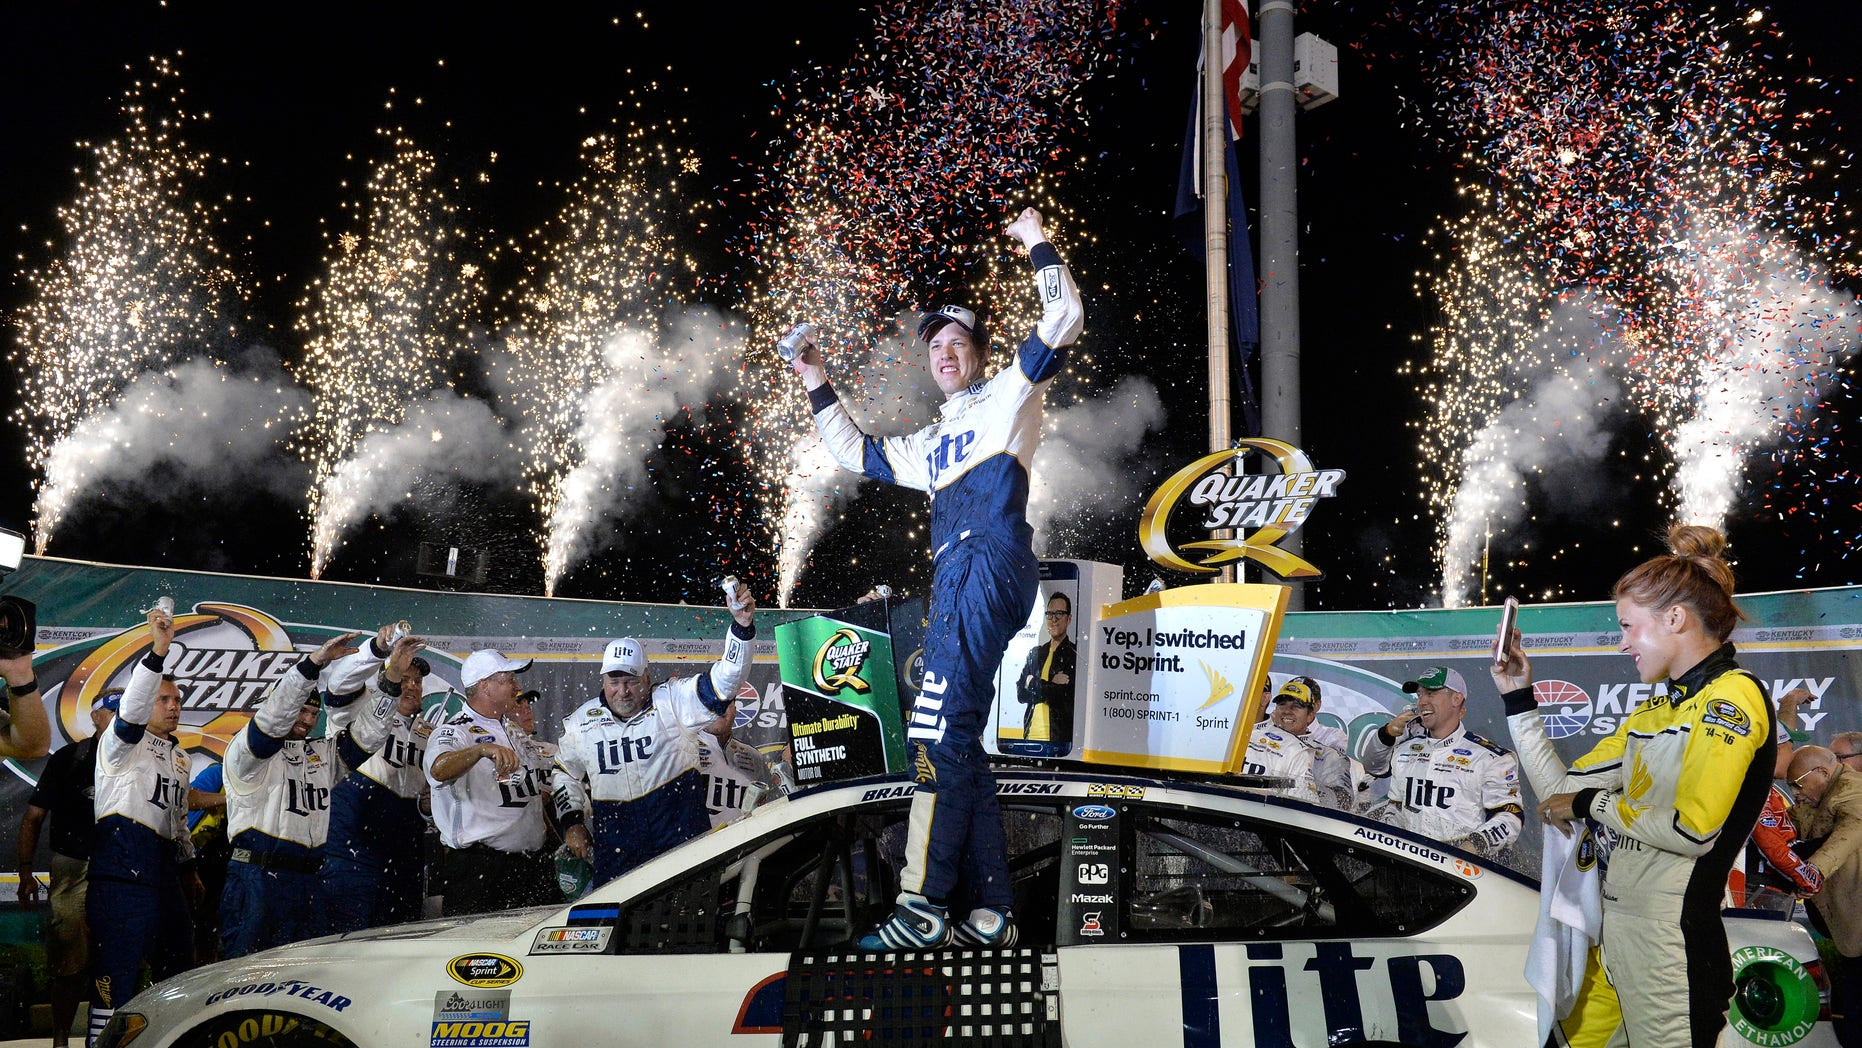 Brad Keselowski stands on his car in Victory Lane after his win in the NASCAR Sprint Cup Series auto race at Kentucky Speedway, Saturday, July 9, 2016 in Sparta, Ky. (AP Photo/Timothy D. Easley)